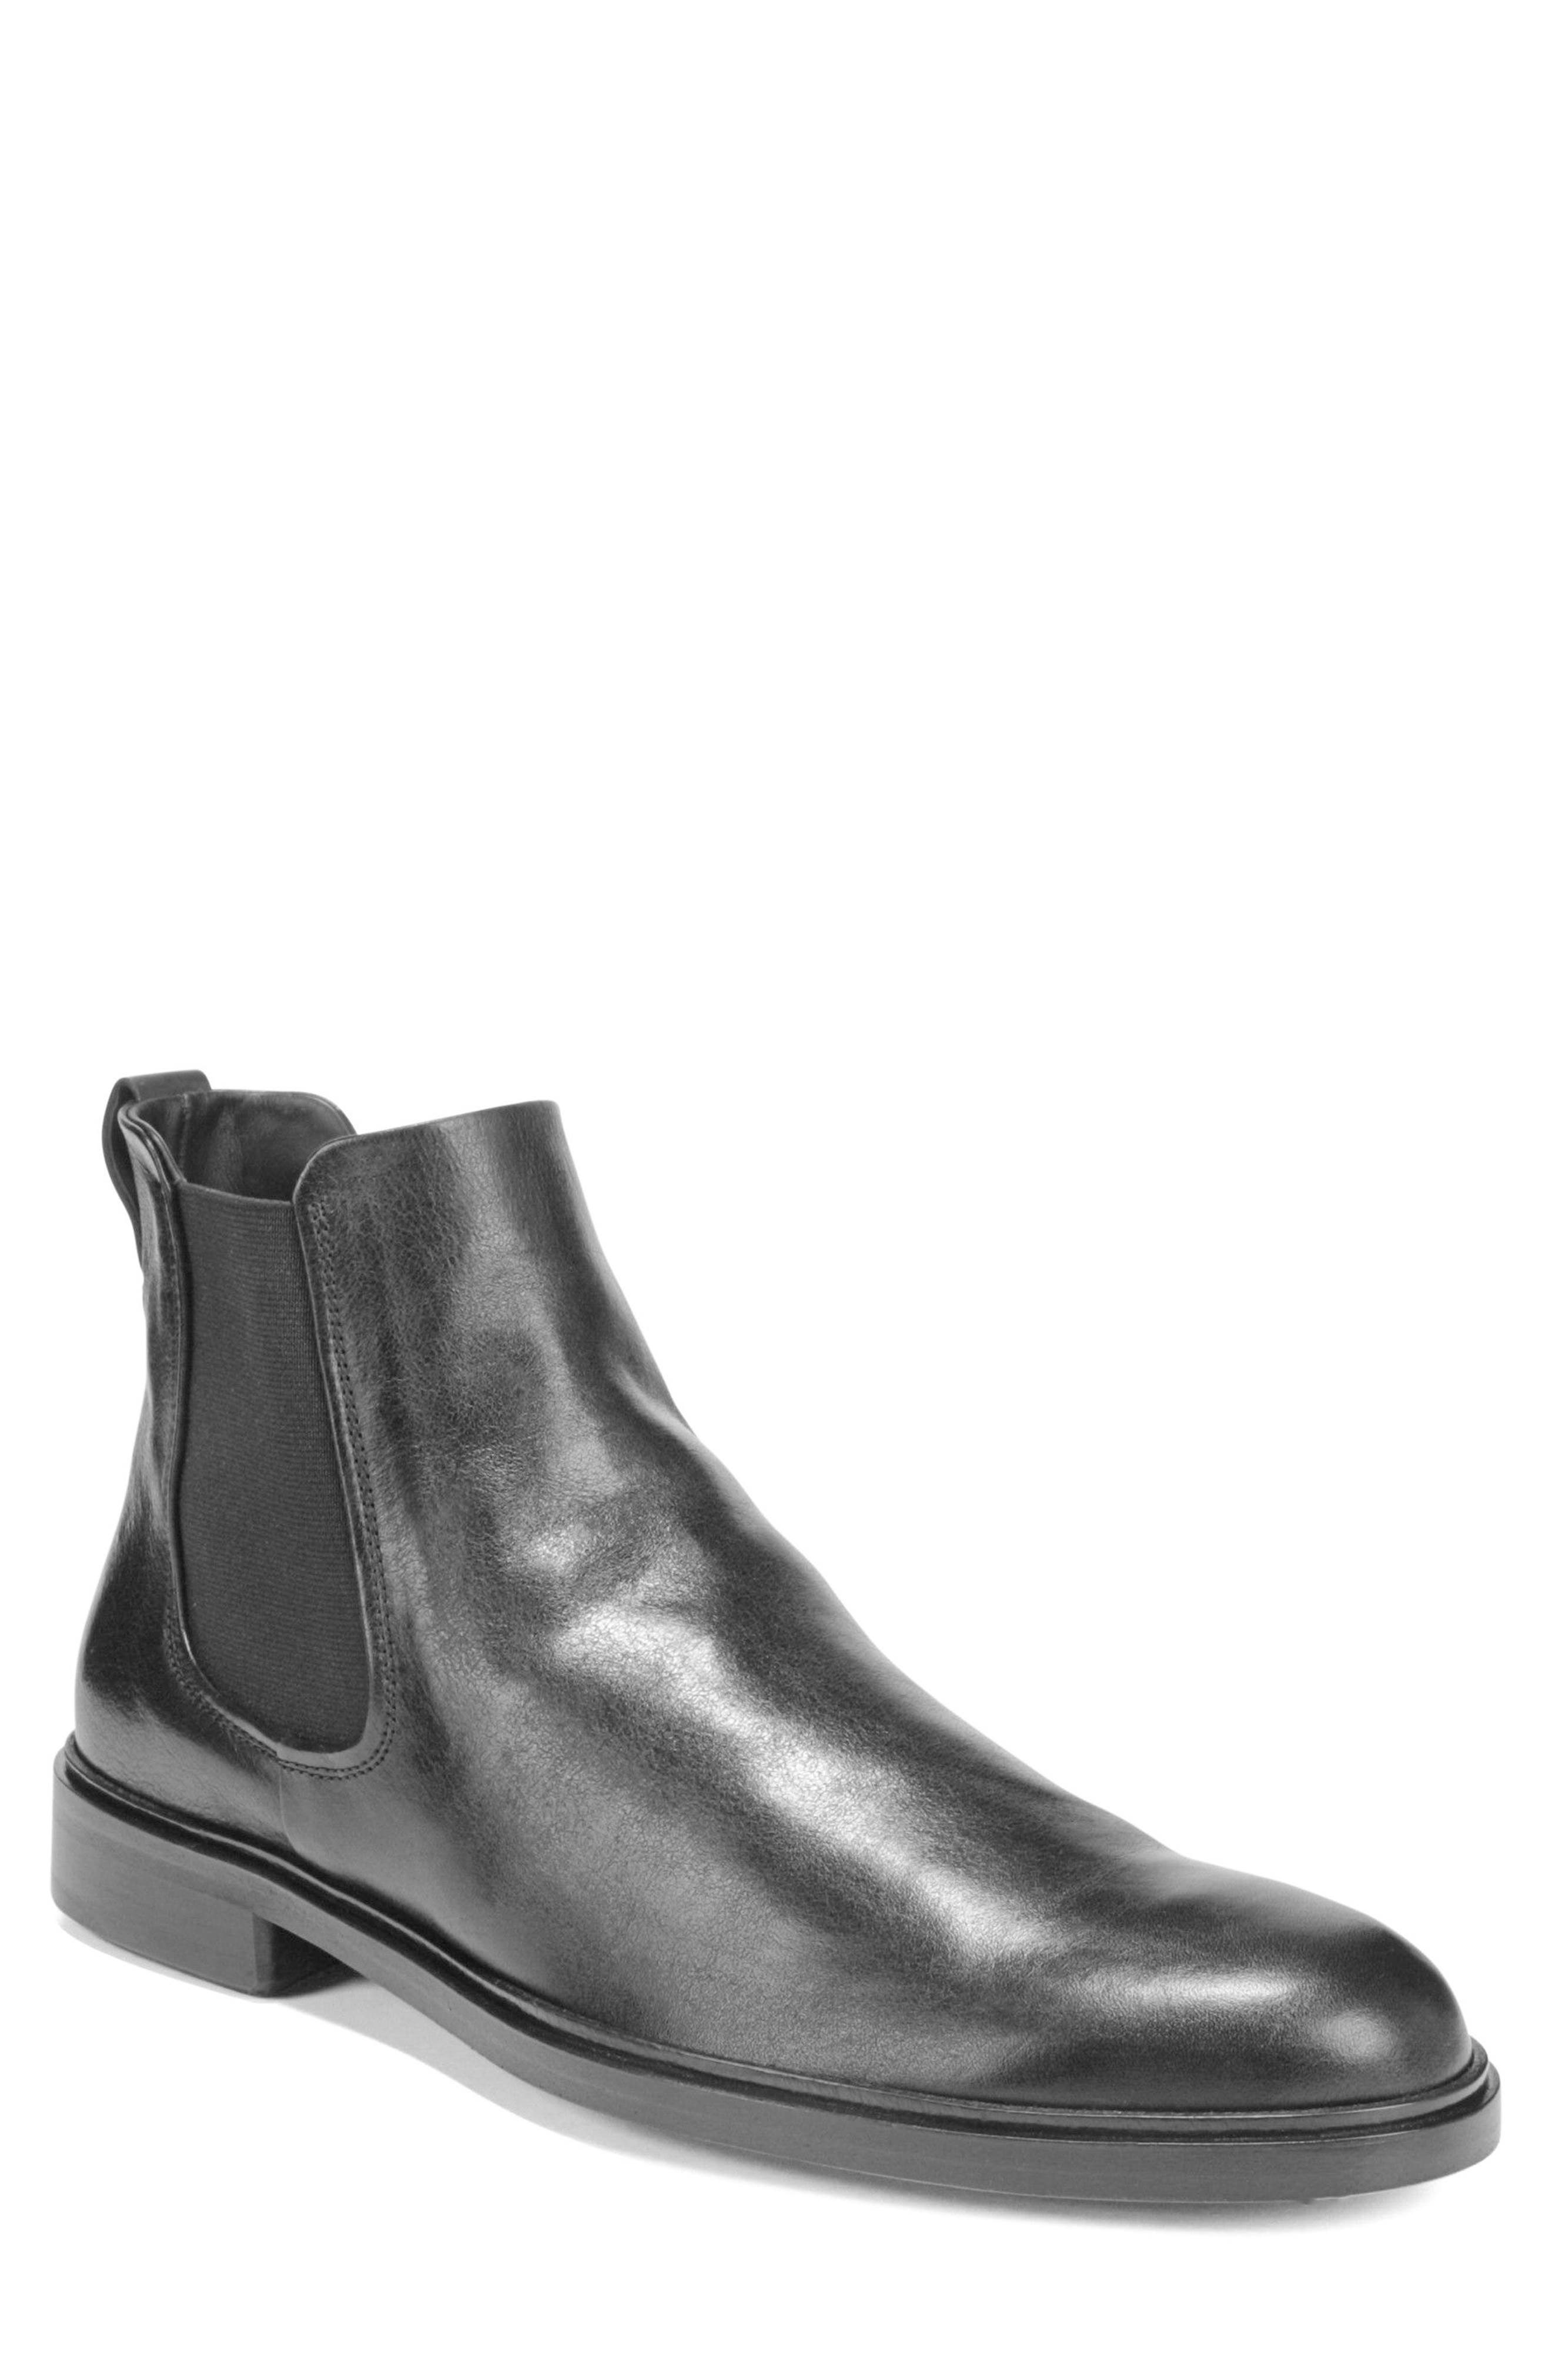 VINCE Burroughs Chelsea Boot, Main, color, BLACK